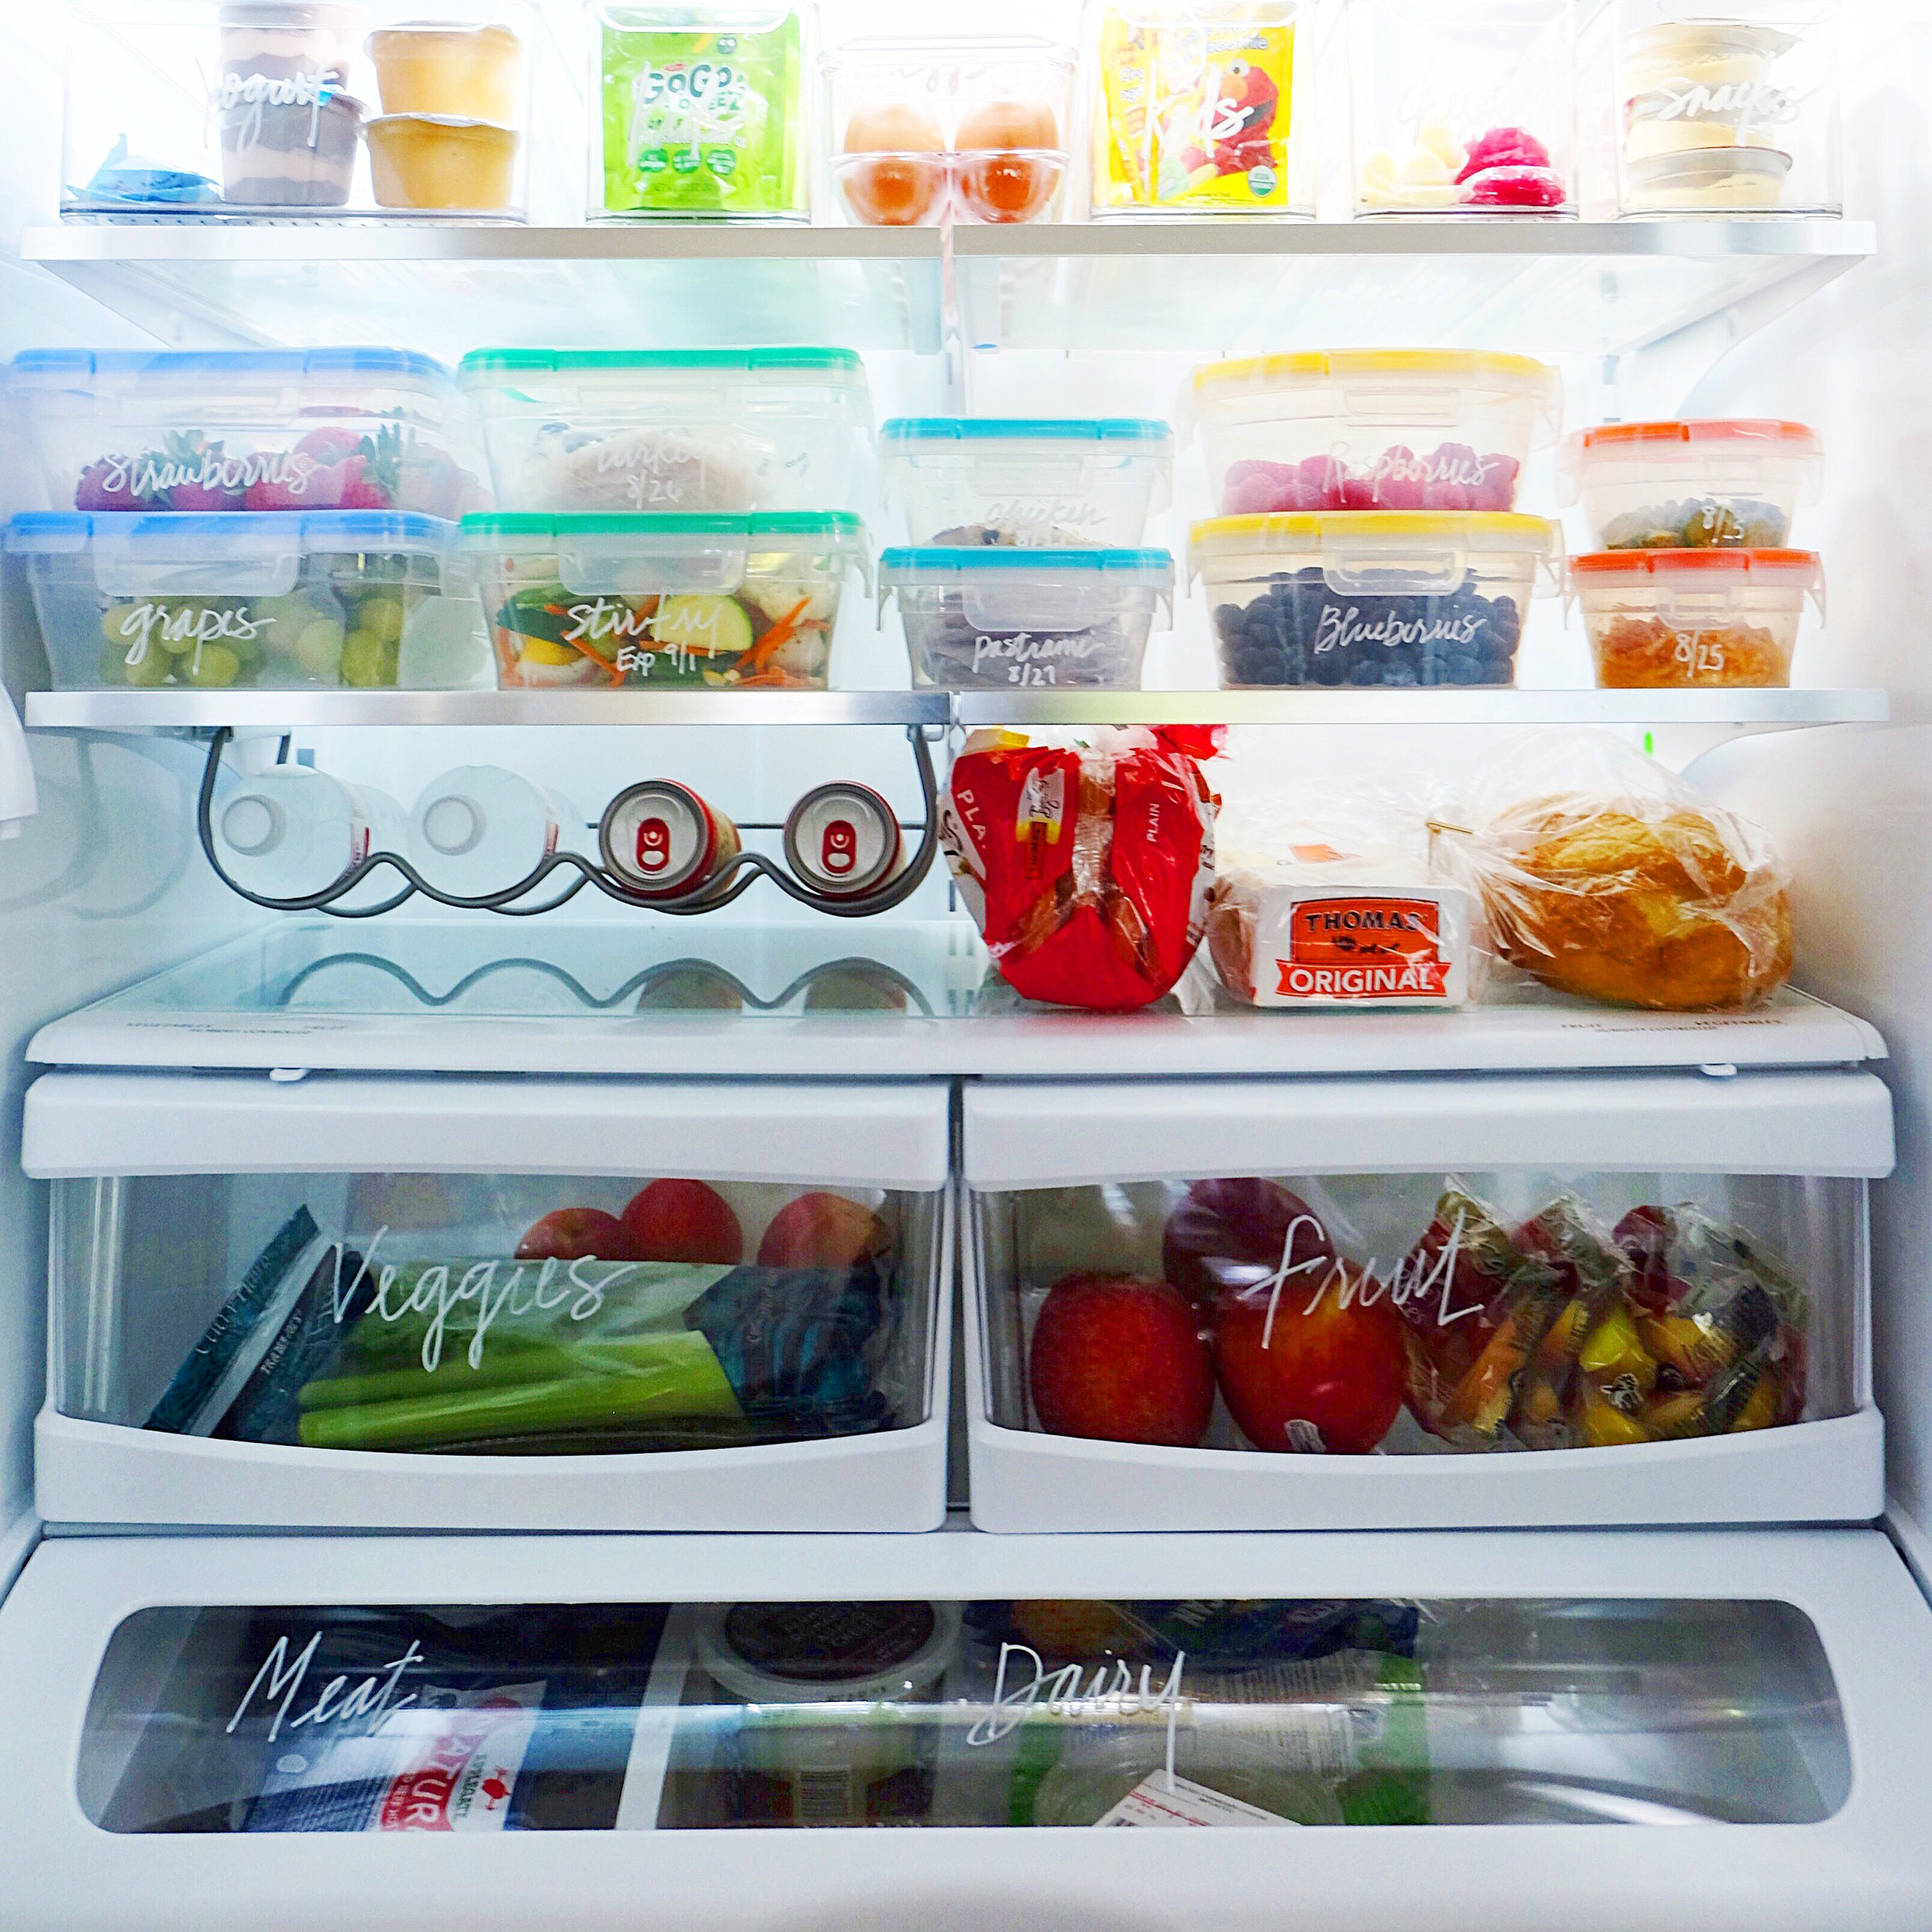 Ten Refrigerators that Inspire Healthy Eating - 101 Cookbooks